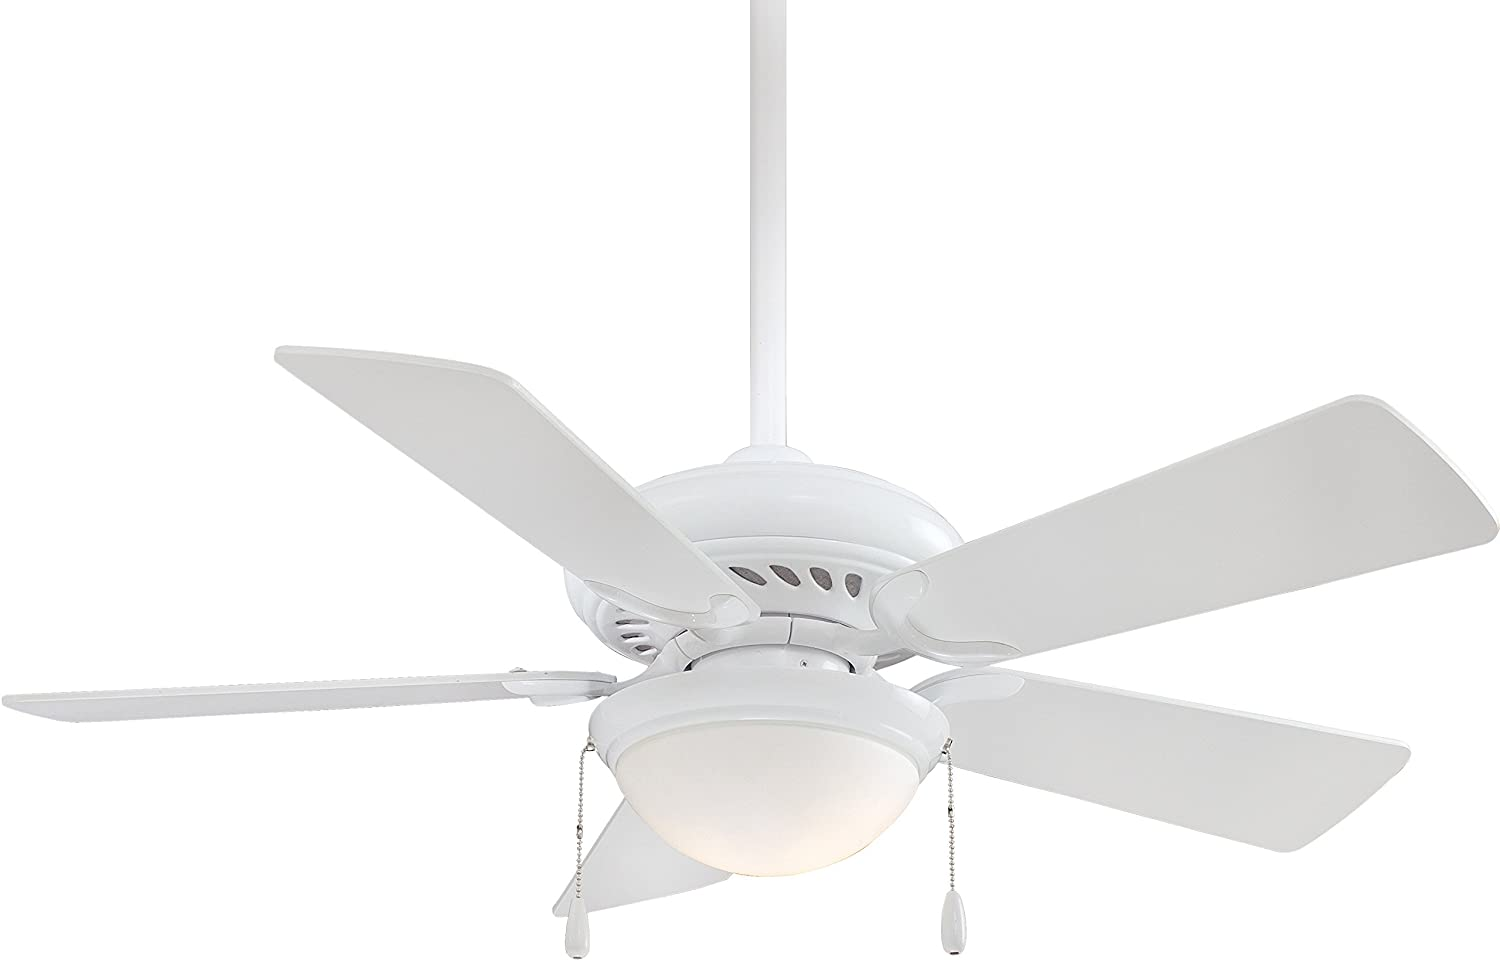 Minka-Aire F563-SP-WH Downrod Mount, 5 White Blades Ceiling fan with 76 watts light, White